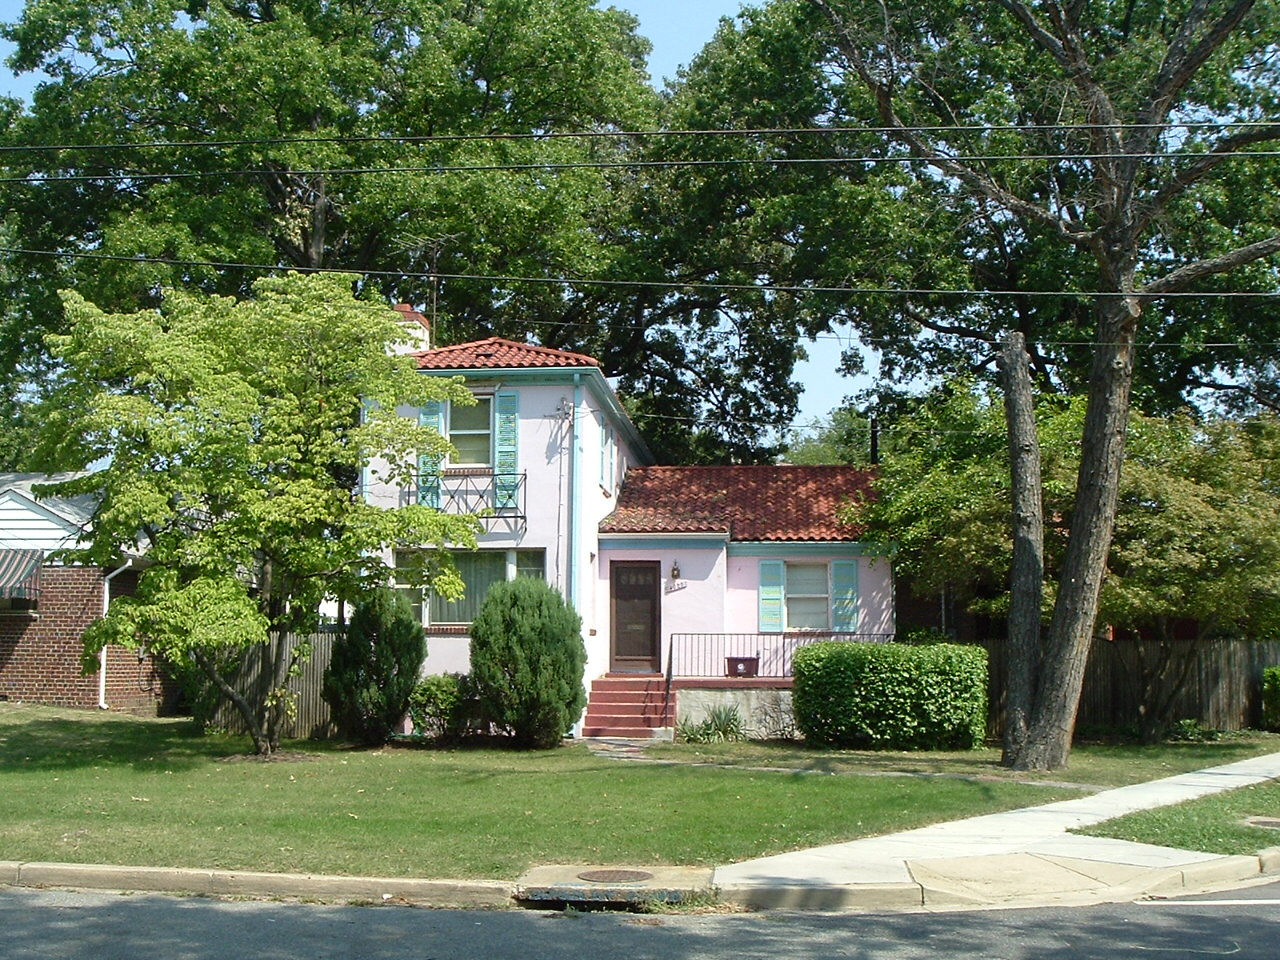 A unique Eastland Gardens house, Pink stucco with a clay tile roof.